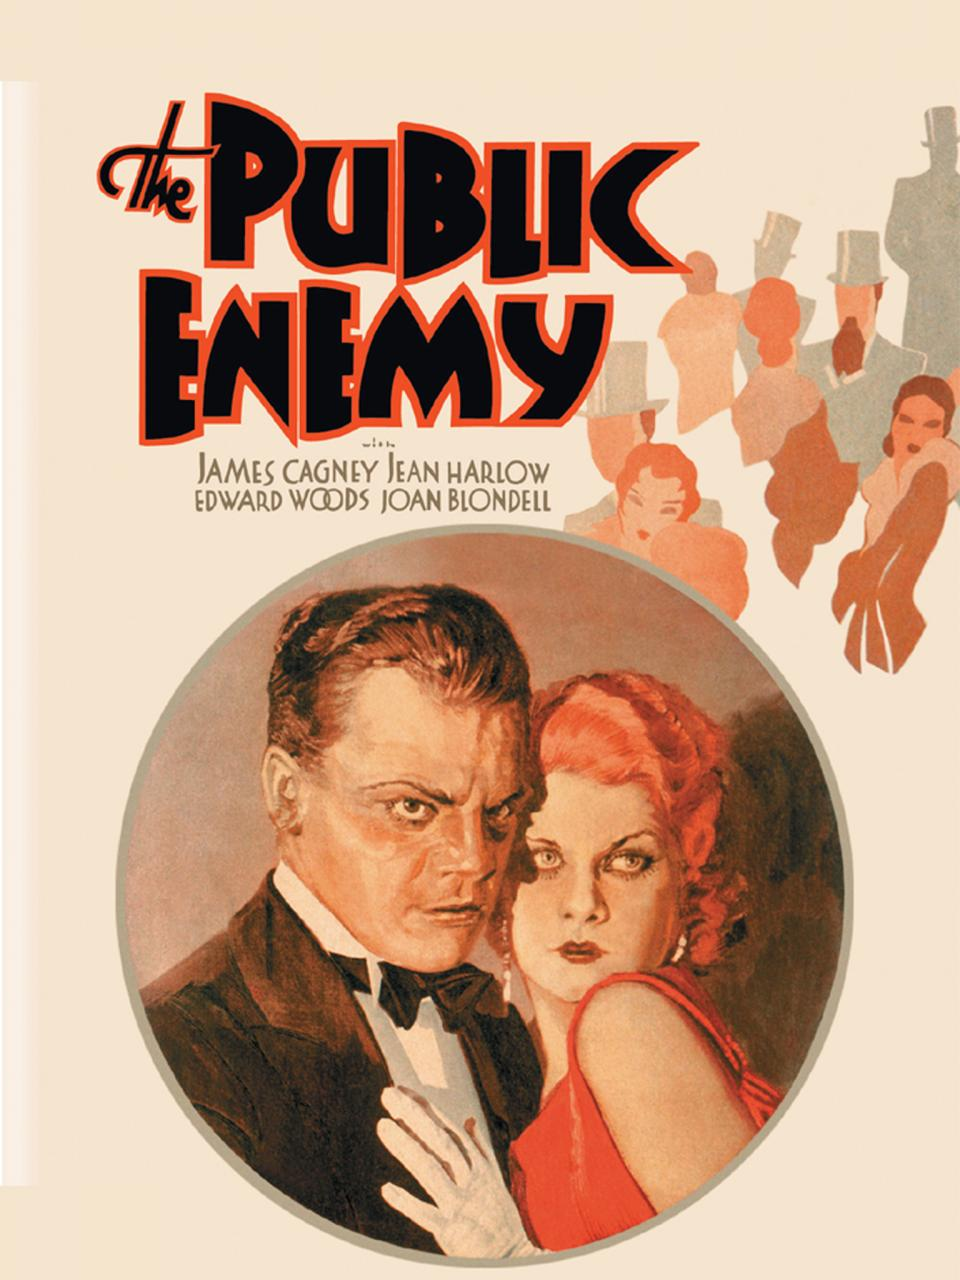 the-public-enemy-poster-copy-1.jpg